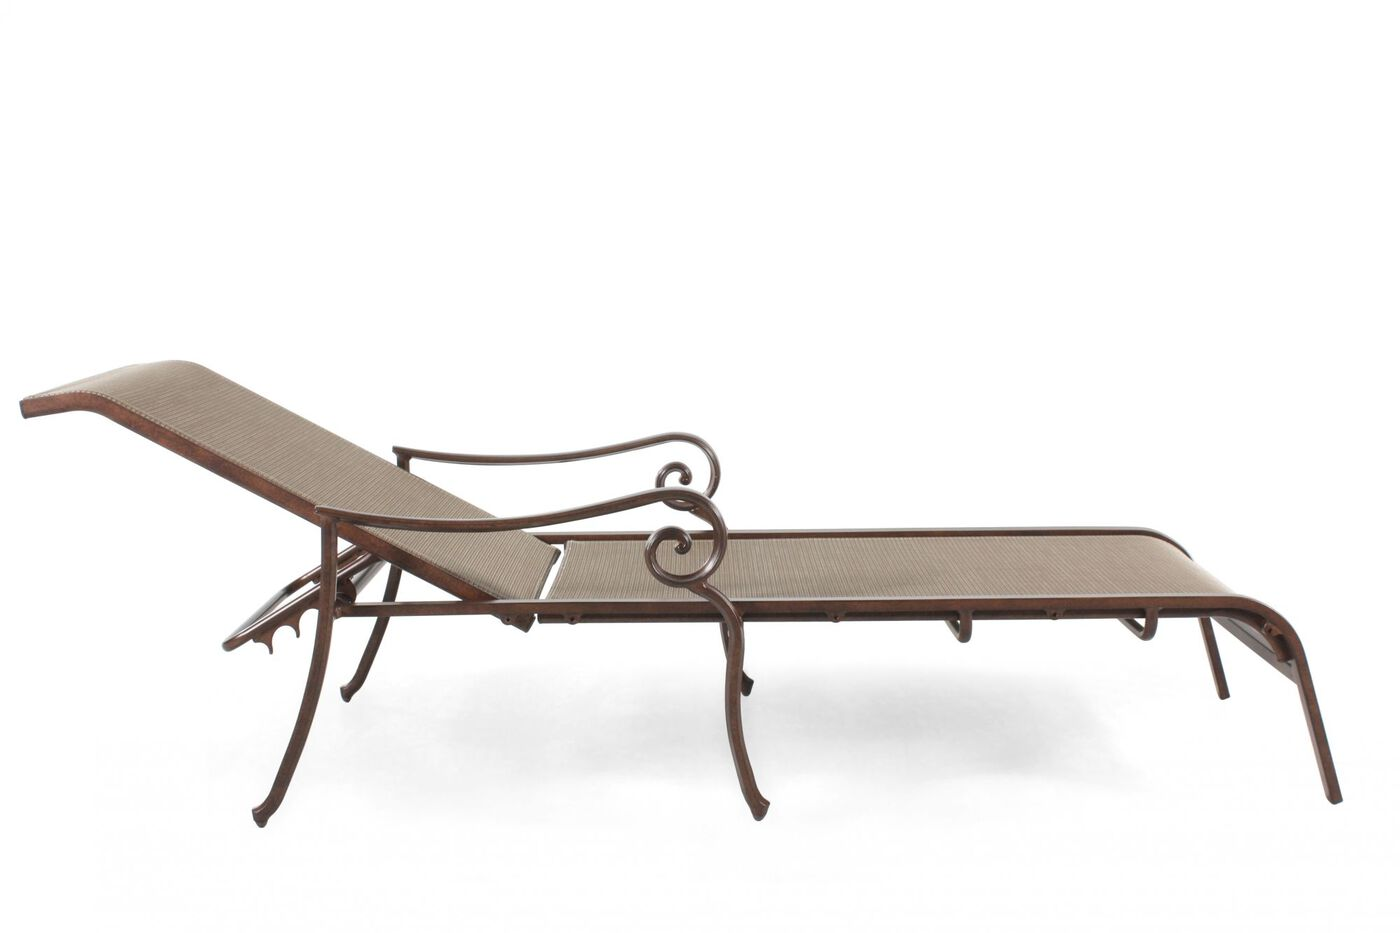 Agio burgandy sling chaise lounge mathis brothers furniture for Agio sling chaise lounge